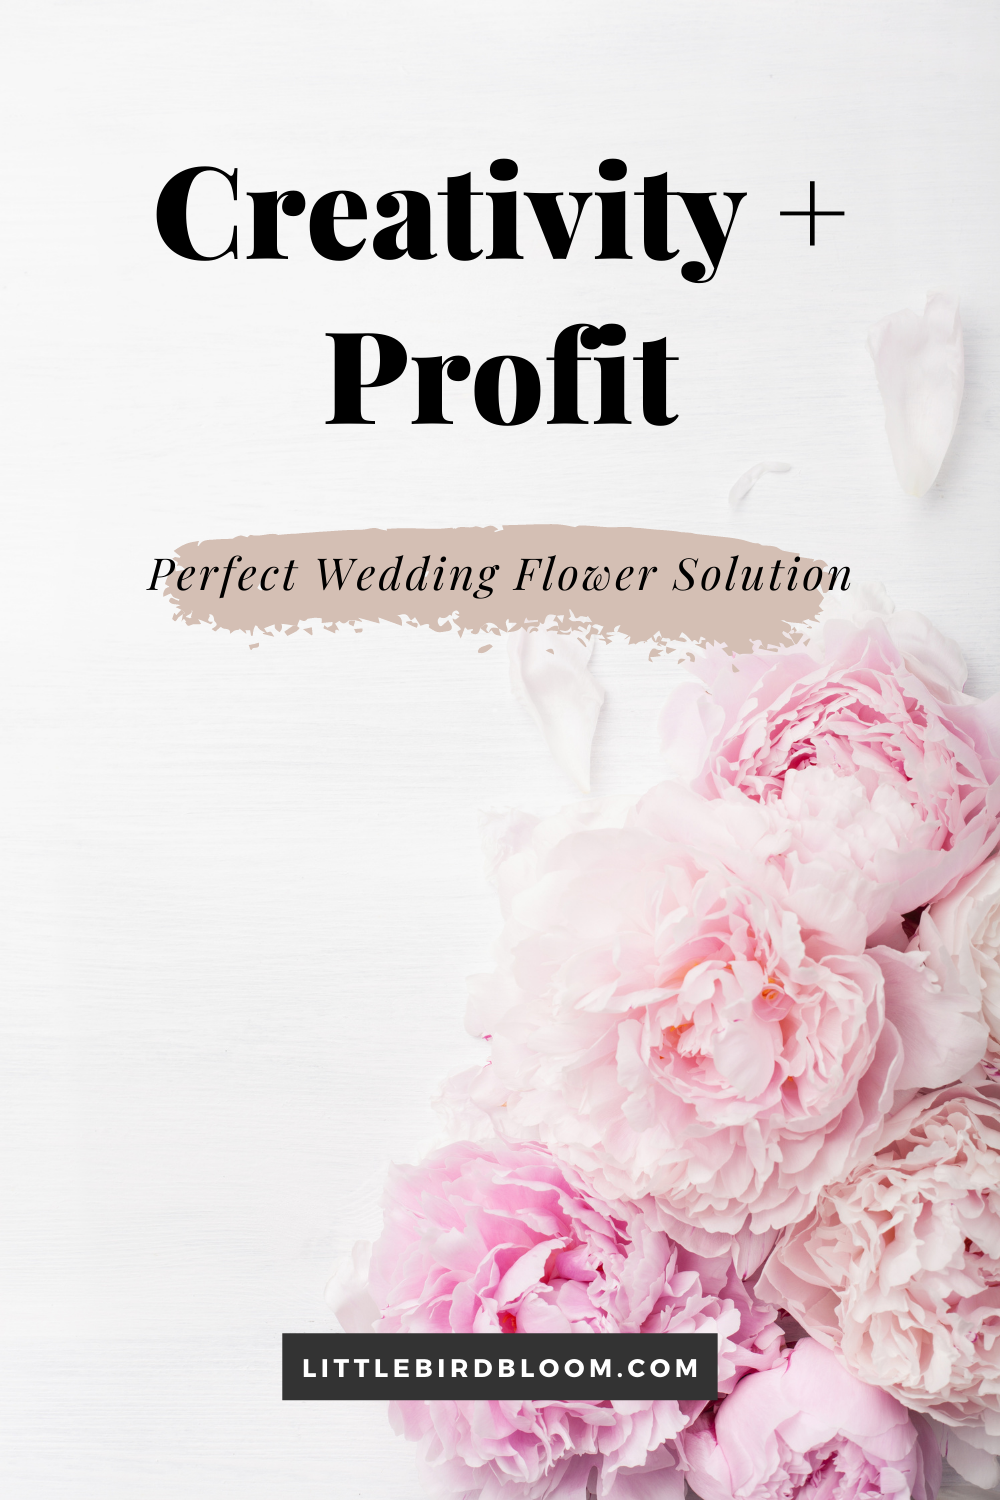 podcast for floral designers business and flowers (11)